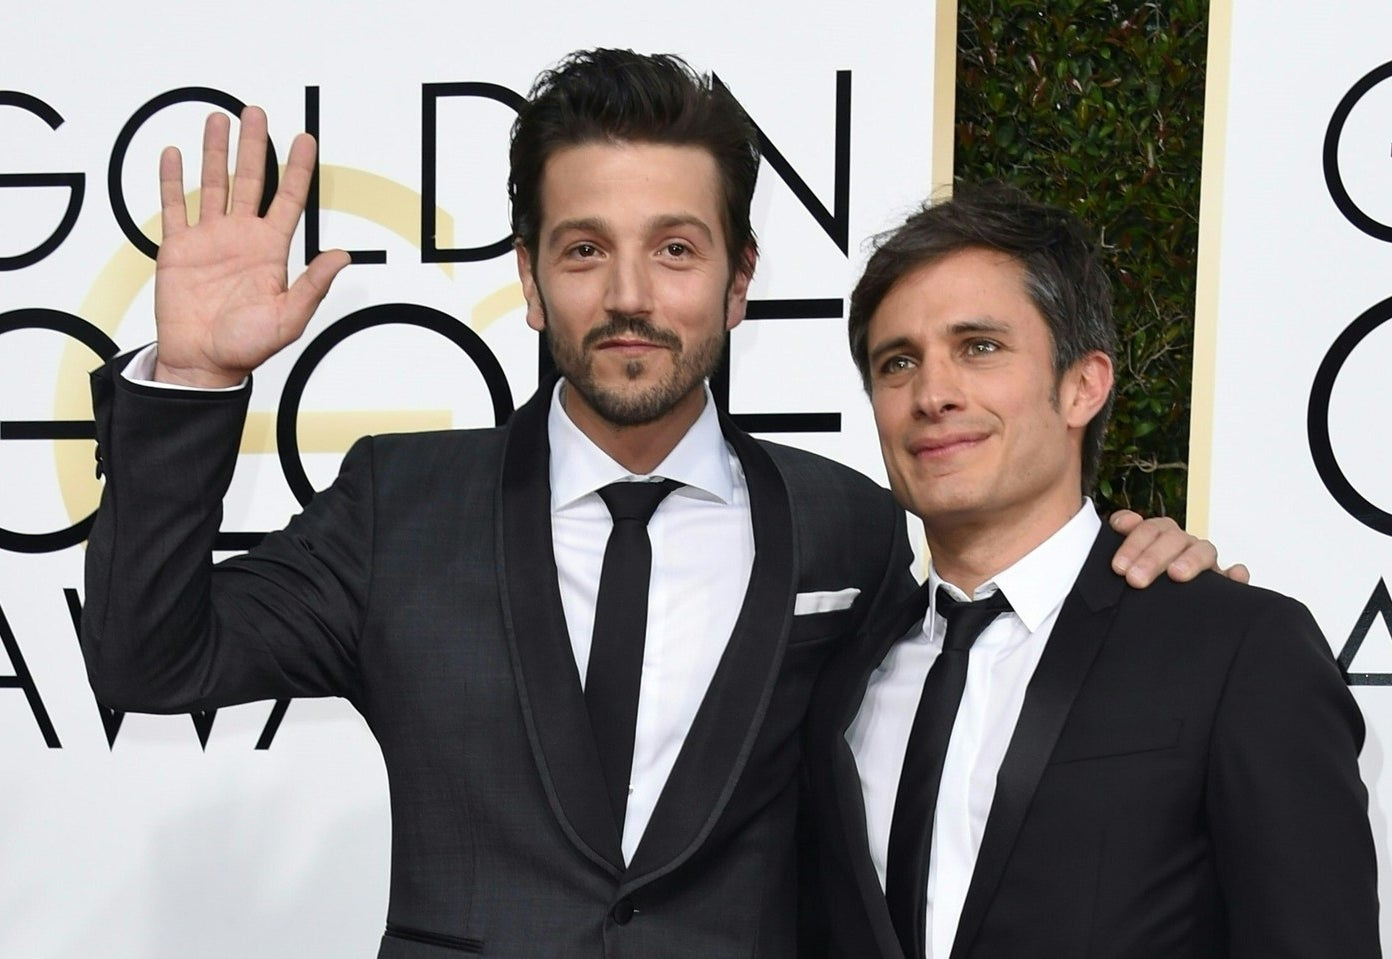 Diego Luna And Gael García Bernal's Lifelong Friendship Is BFF Goals